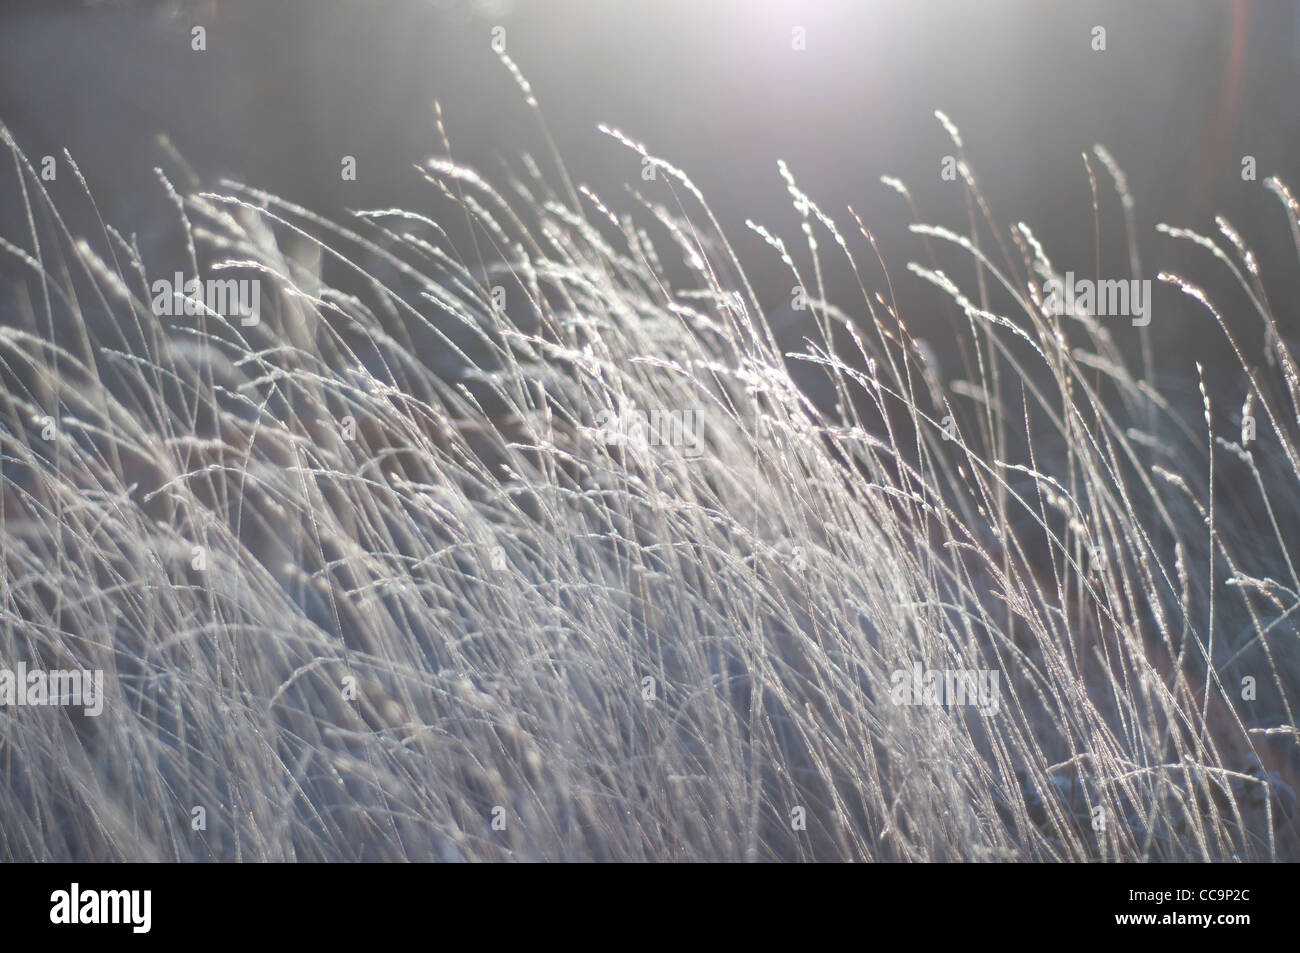 The sun on grasses on a freezing cold, frosty morning. Muted colours. A blurred background with grasses in focus - Stock Image